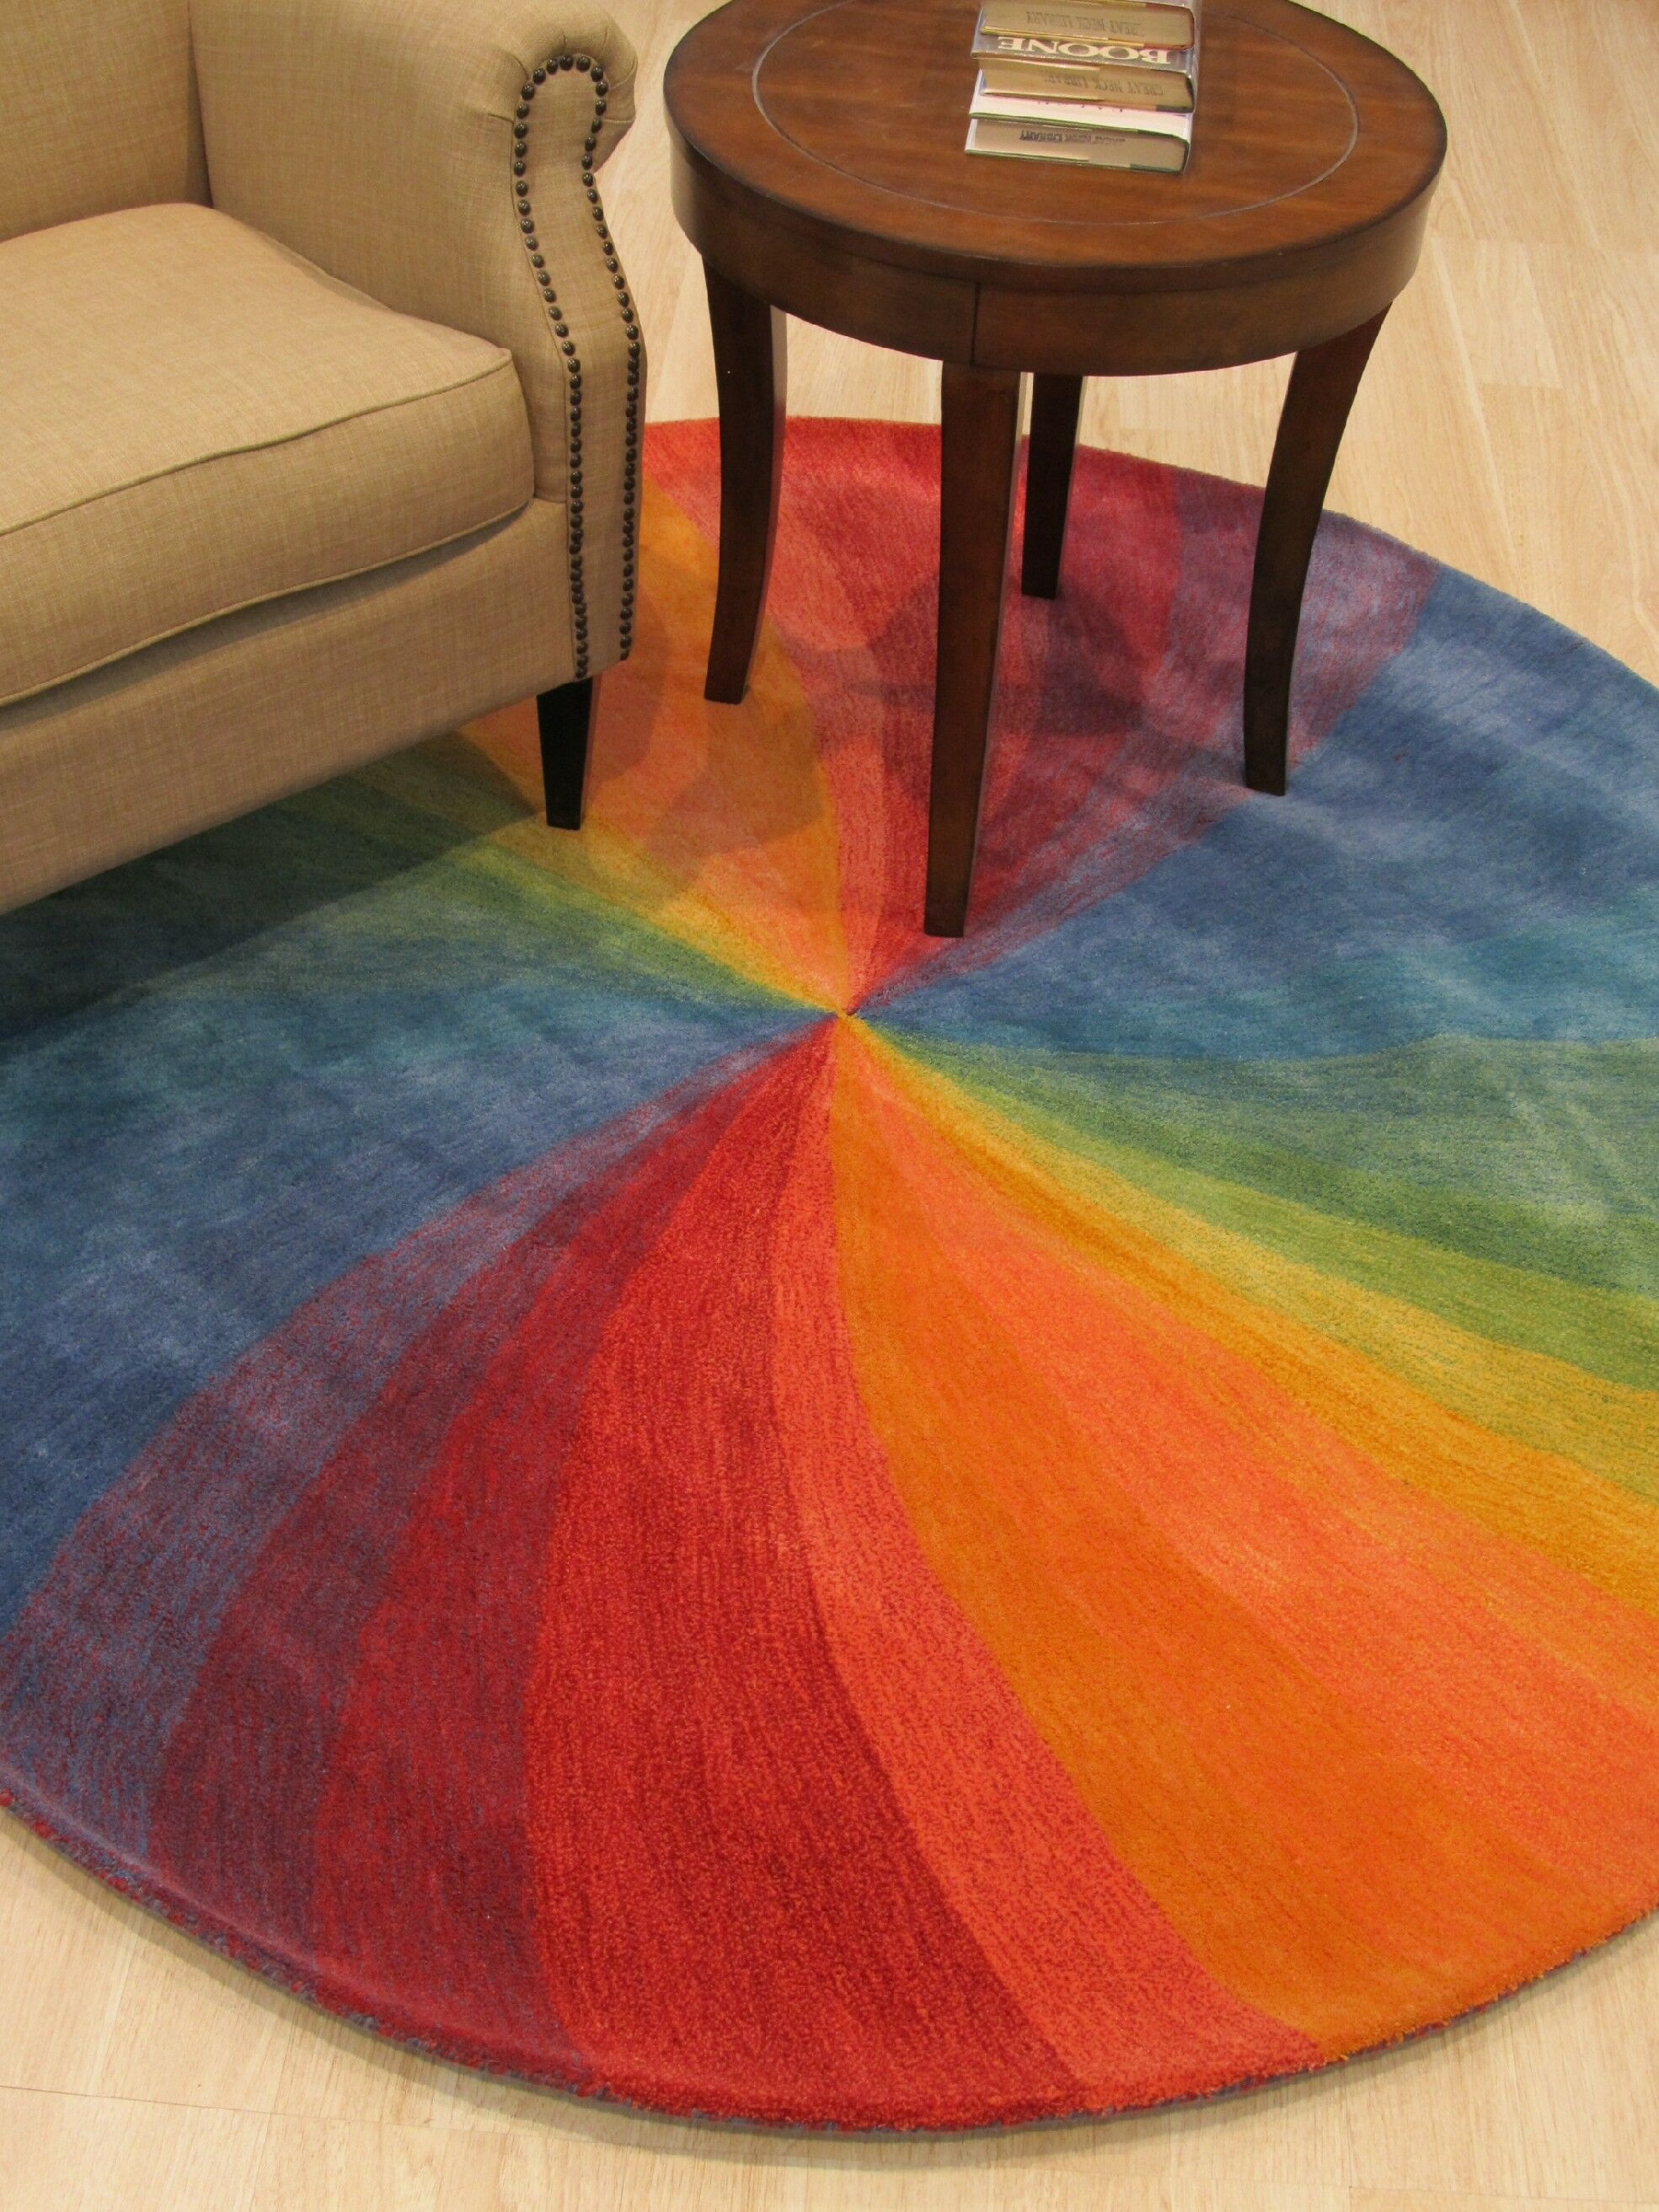 Hanchett Contemporary Abstract Hand-Tufted Wool Multi-colored Area Rug Rug Size: Round 9'9